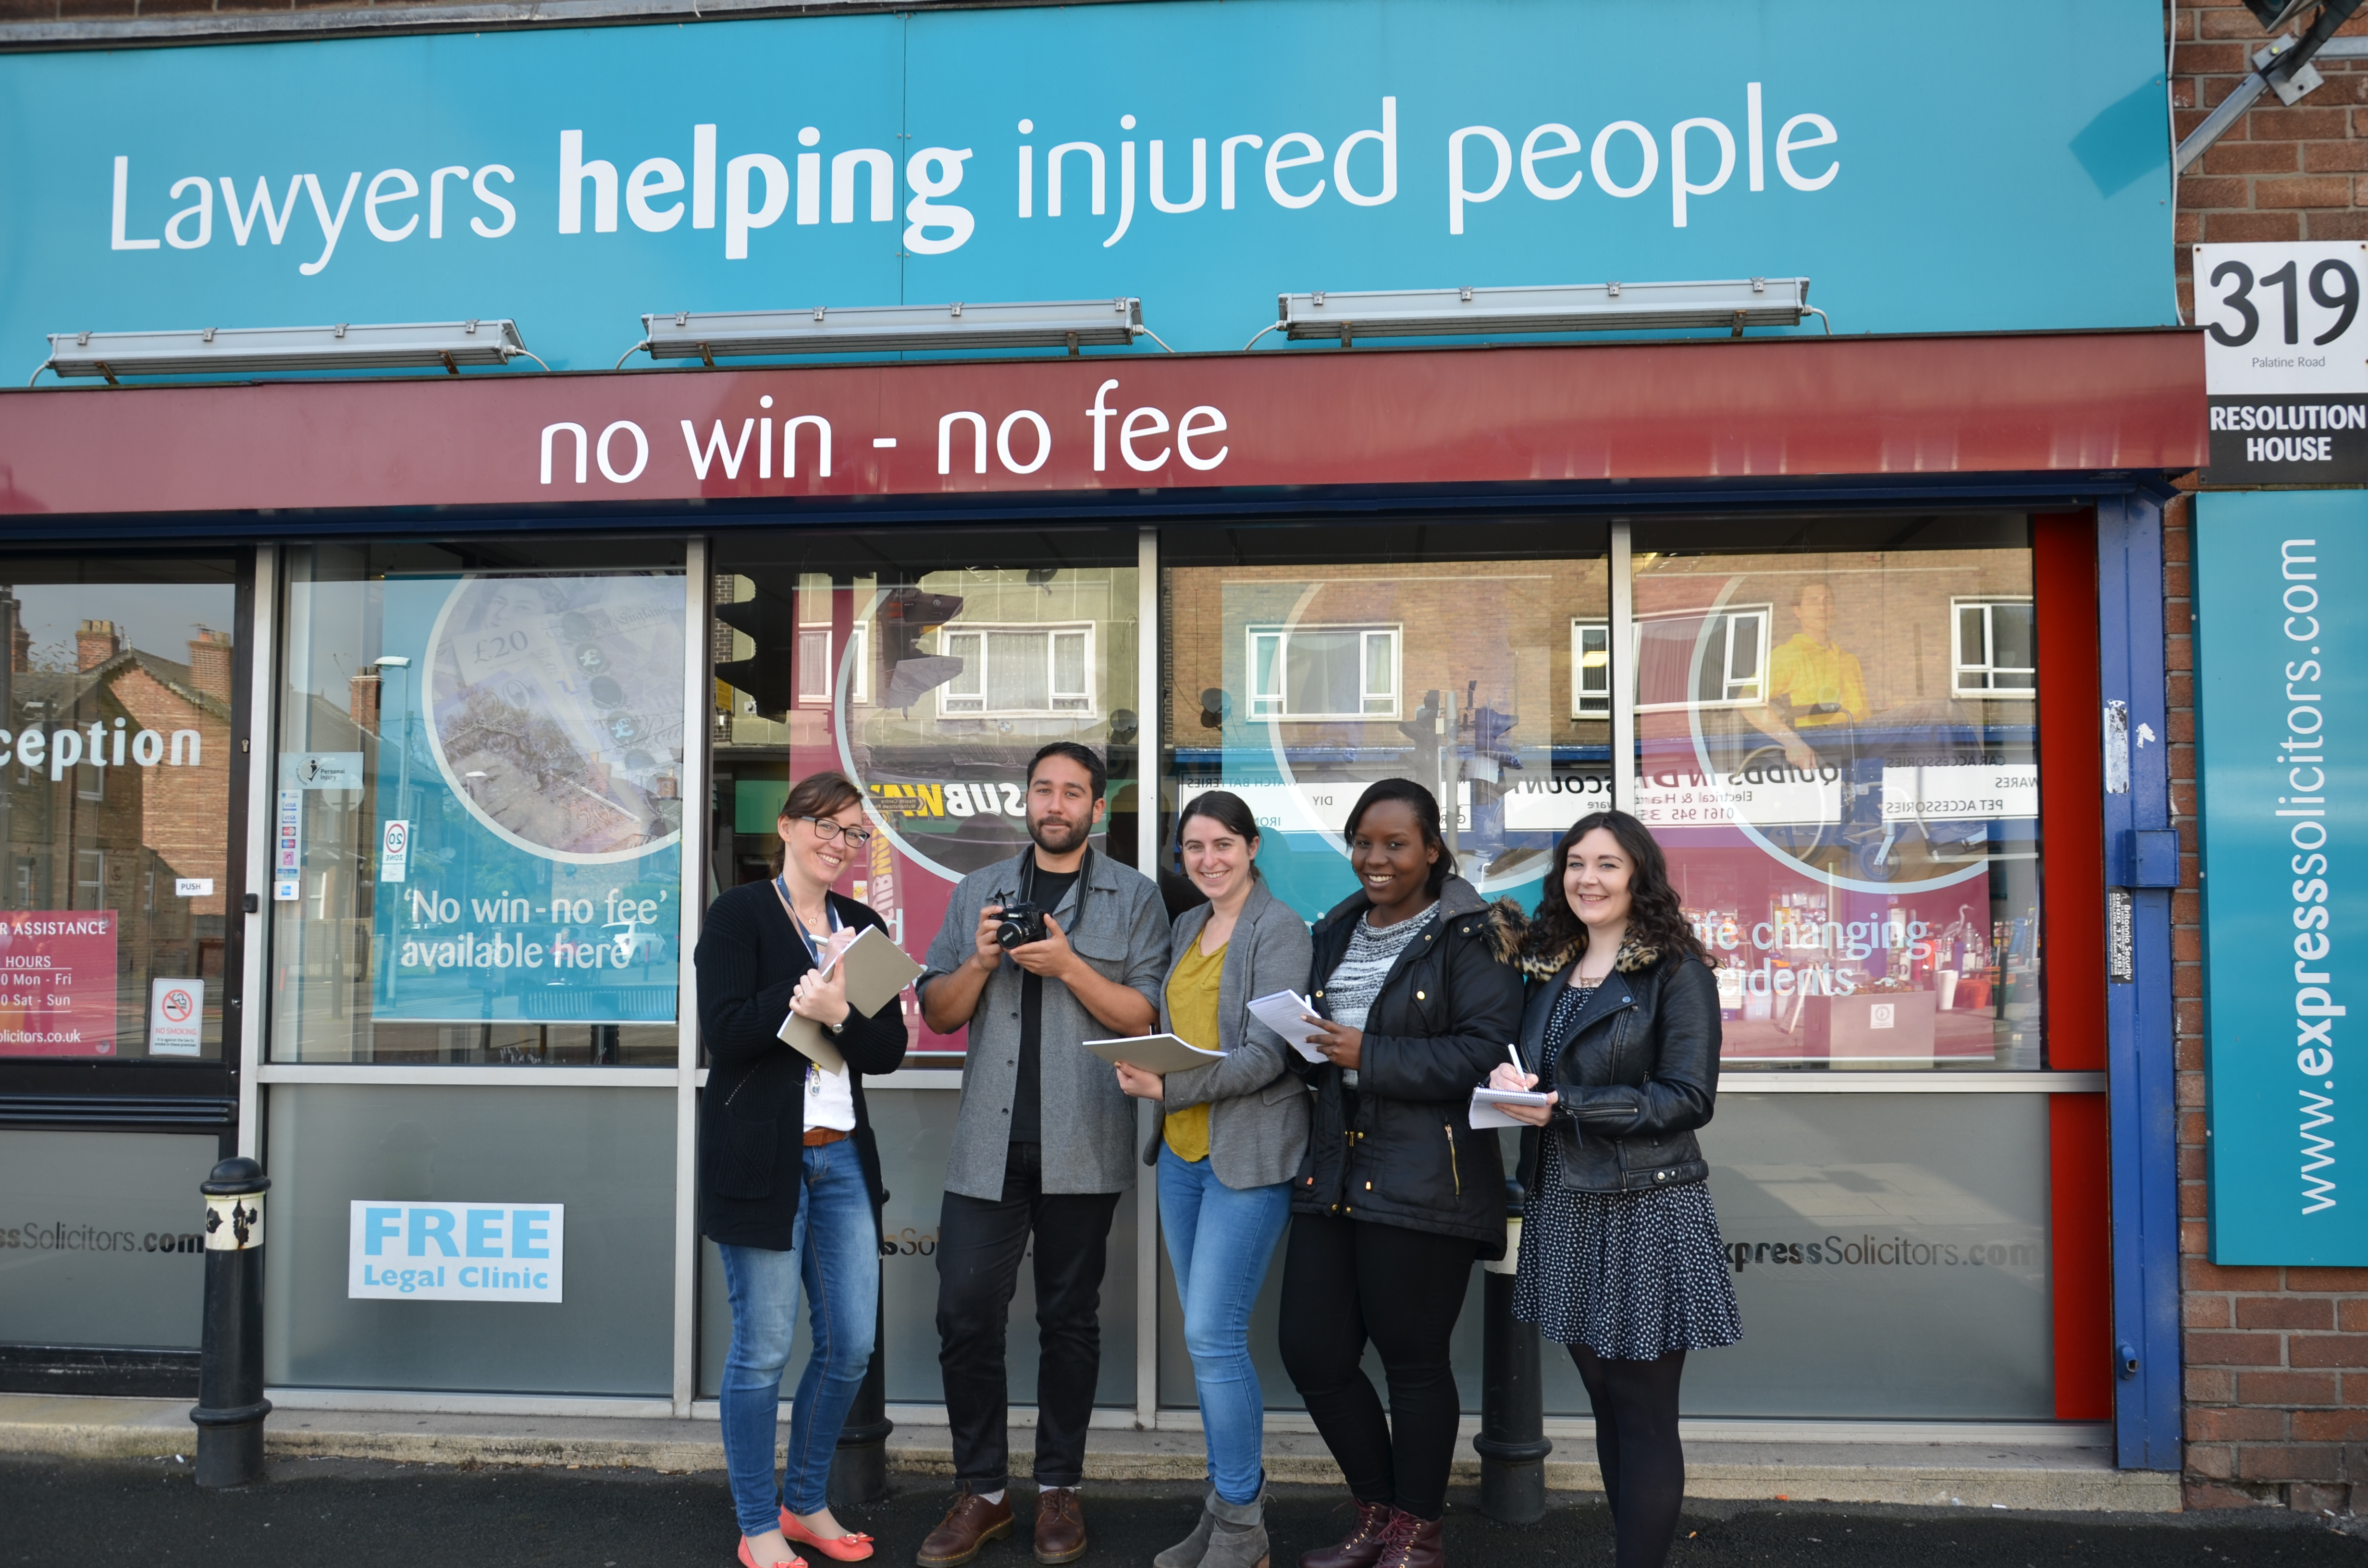 Express Solicitors Community Reporters